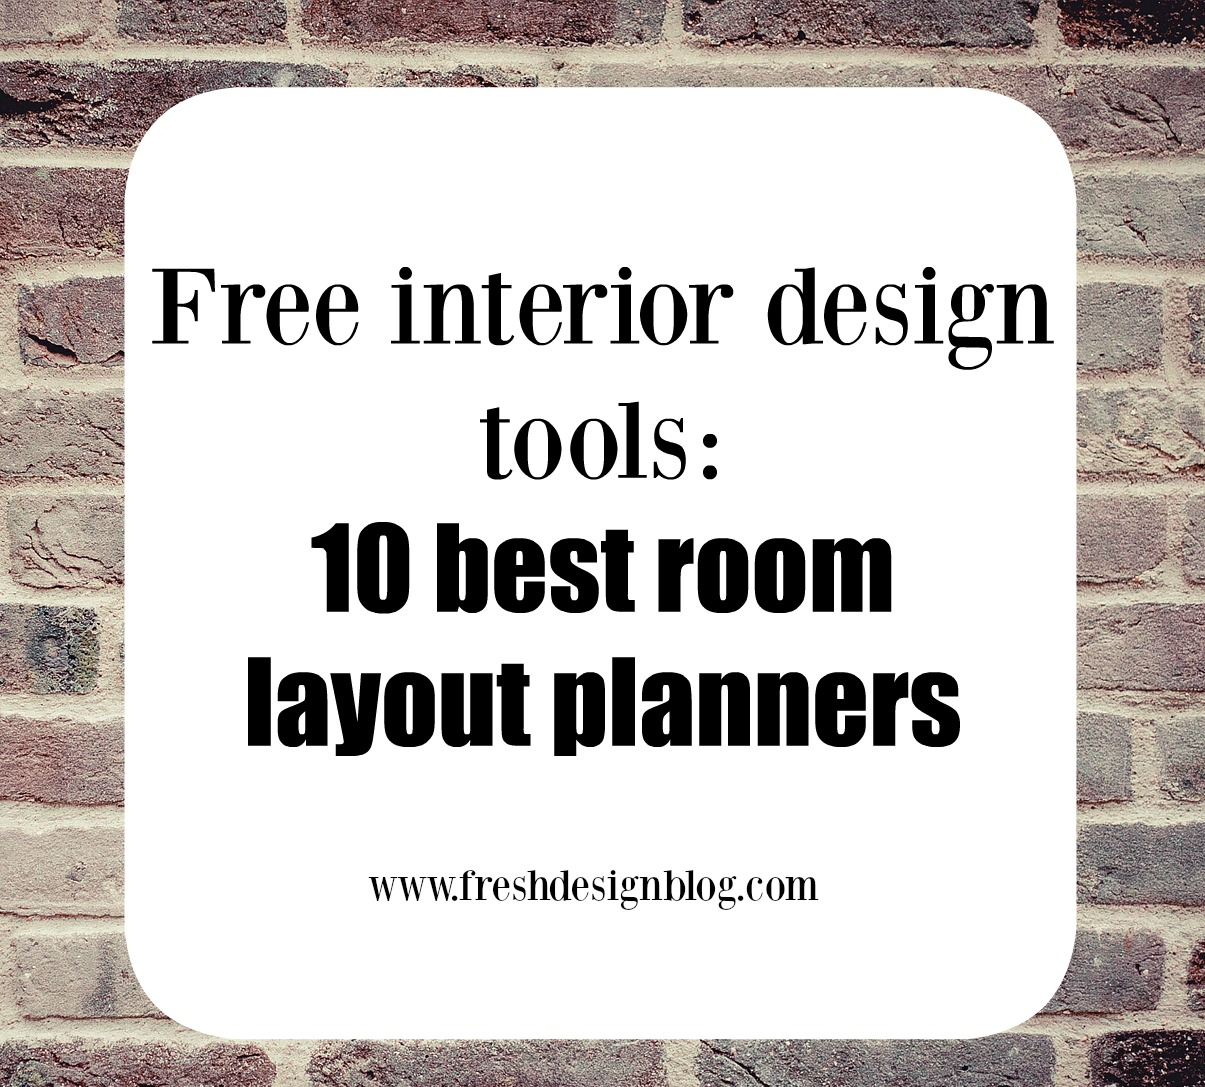 Learn How To Re Design And Plan A Room Using These Fab Free Interior